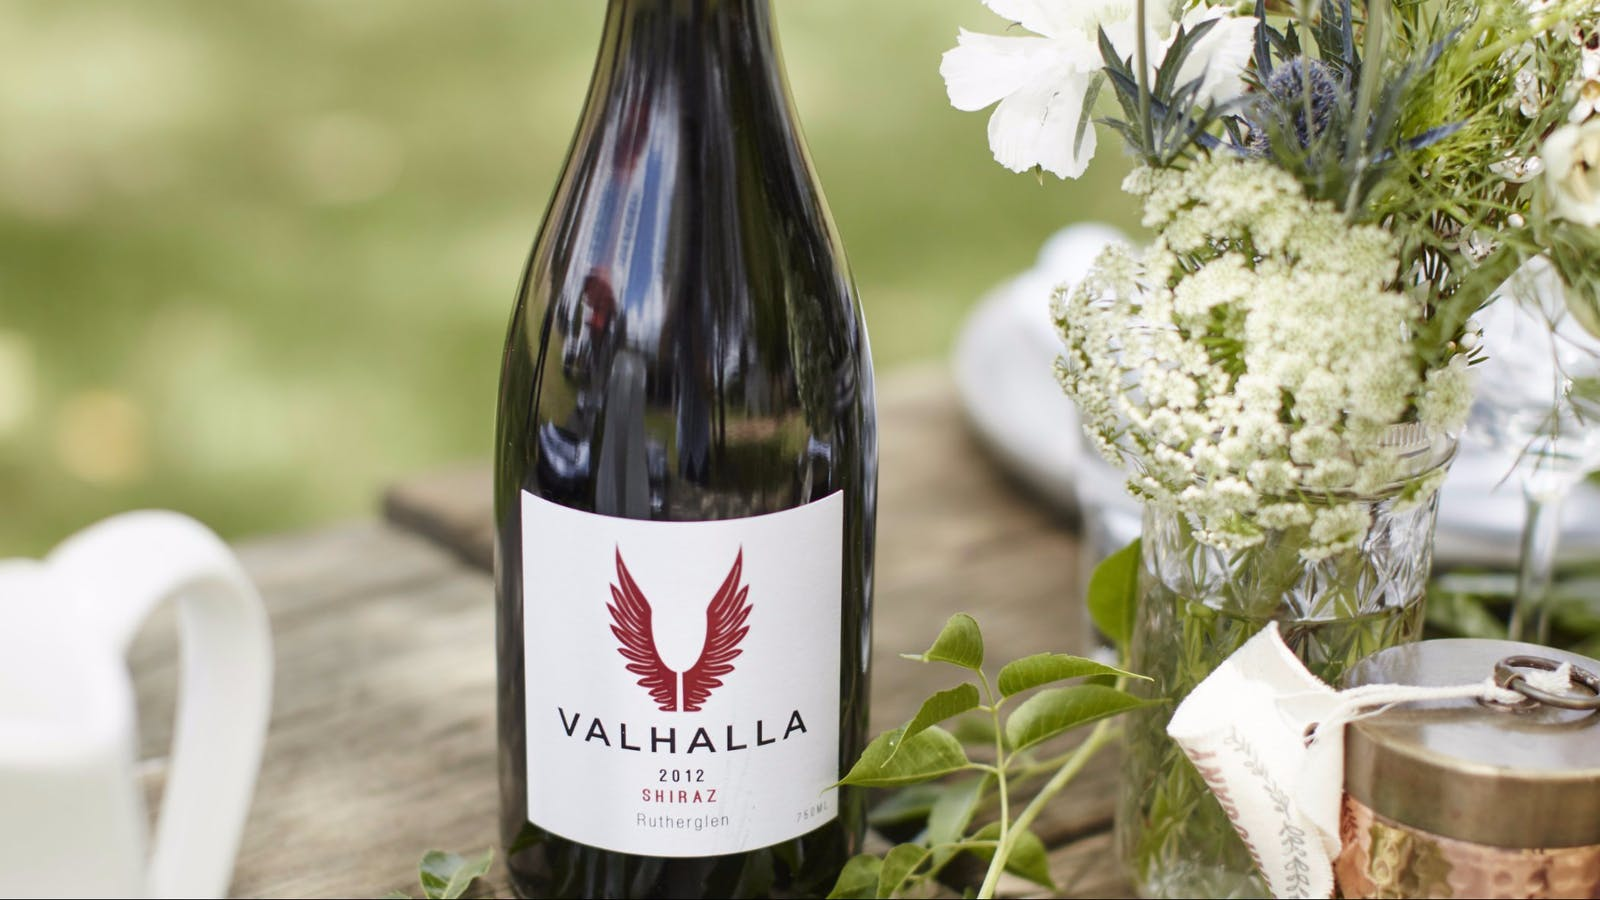 Valhalla Shiraz Bottle